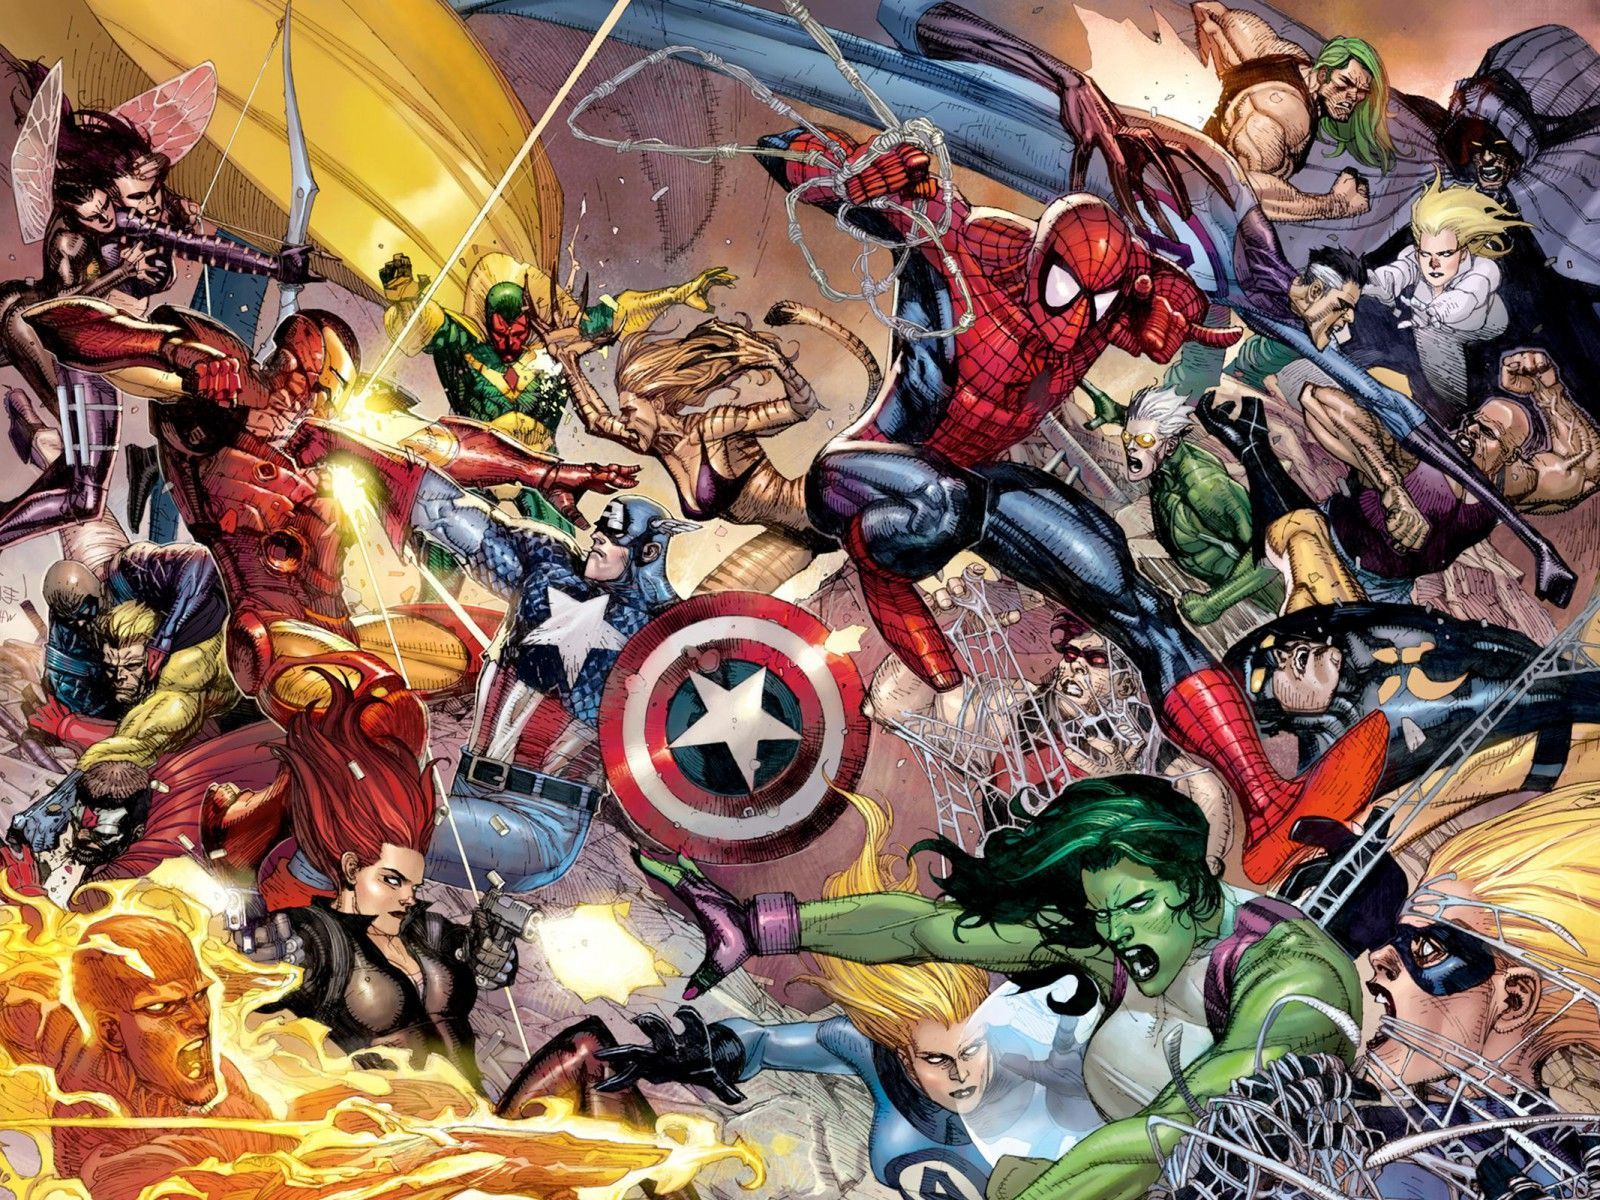 Most Inspiring Wallpaper Marvel High Resolution - avengers-infinity-war-comic-wallpapers-full-hd-On-High-Resolution-Wallpaper-PIC-MCH042376  Gallery_464195.jpg